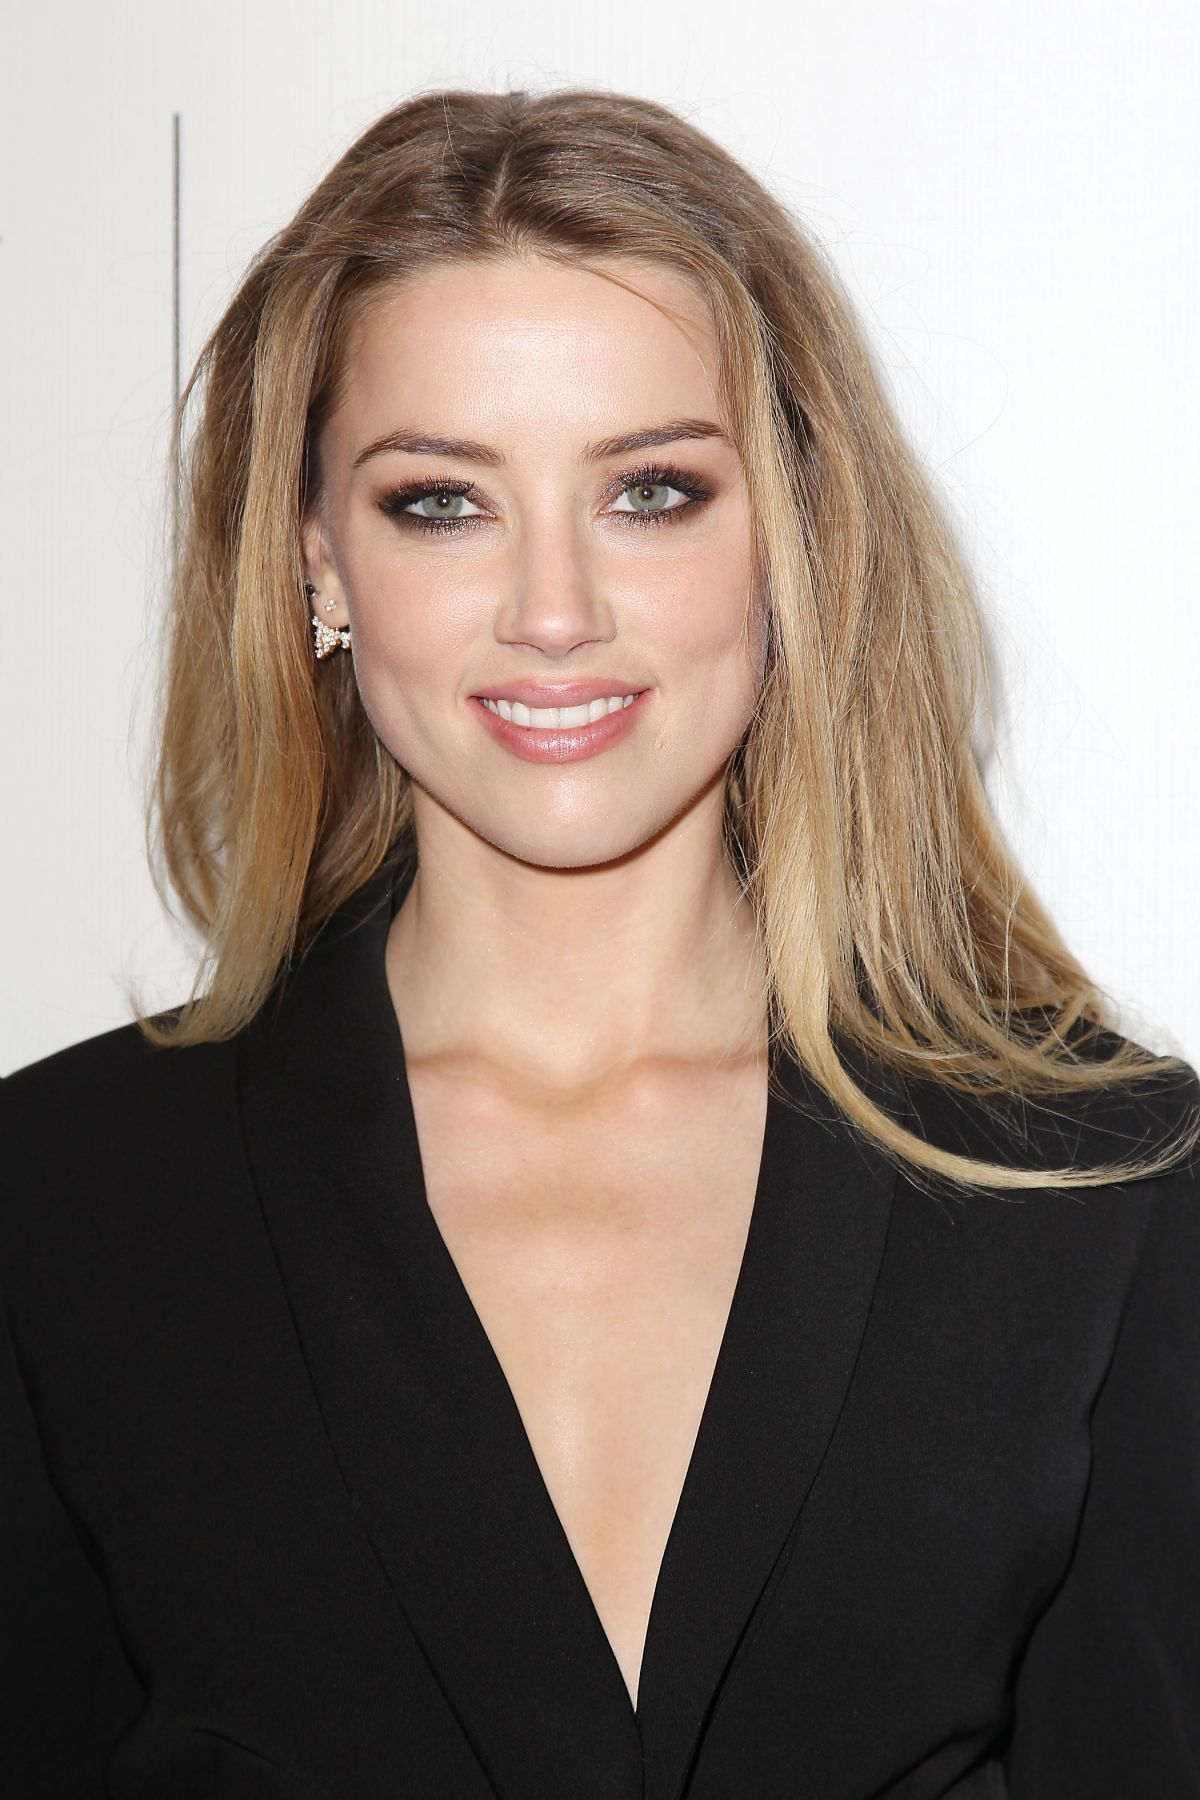 New Hollywood Movies Hd Wallpapers 75 Amber Heard Sexiest Images And Beautiful Hd Wallpapers